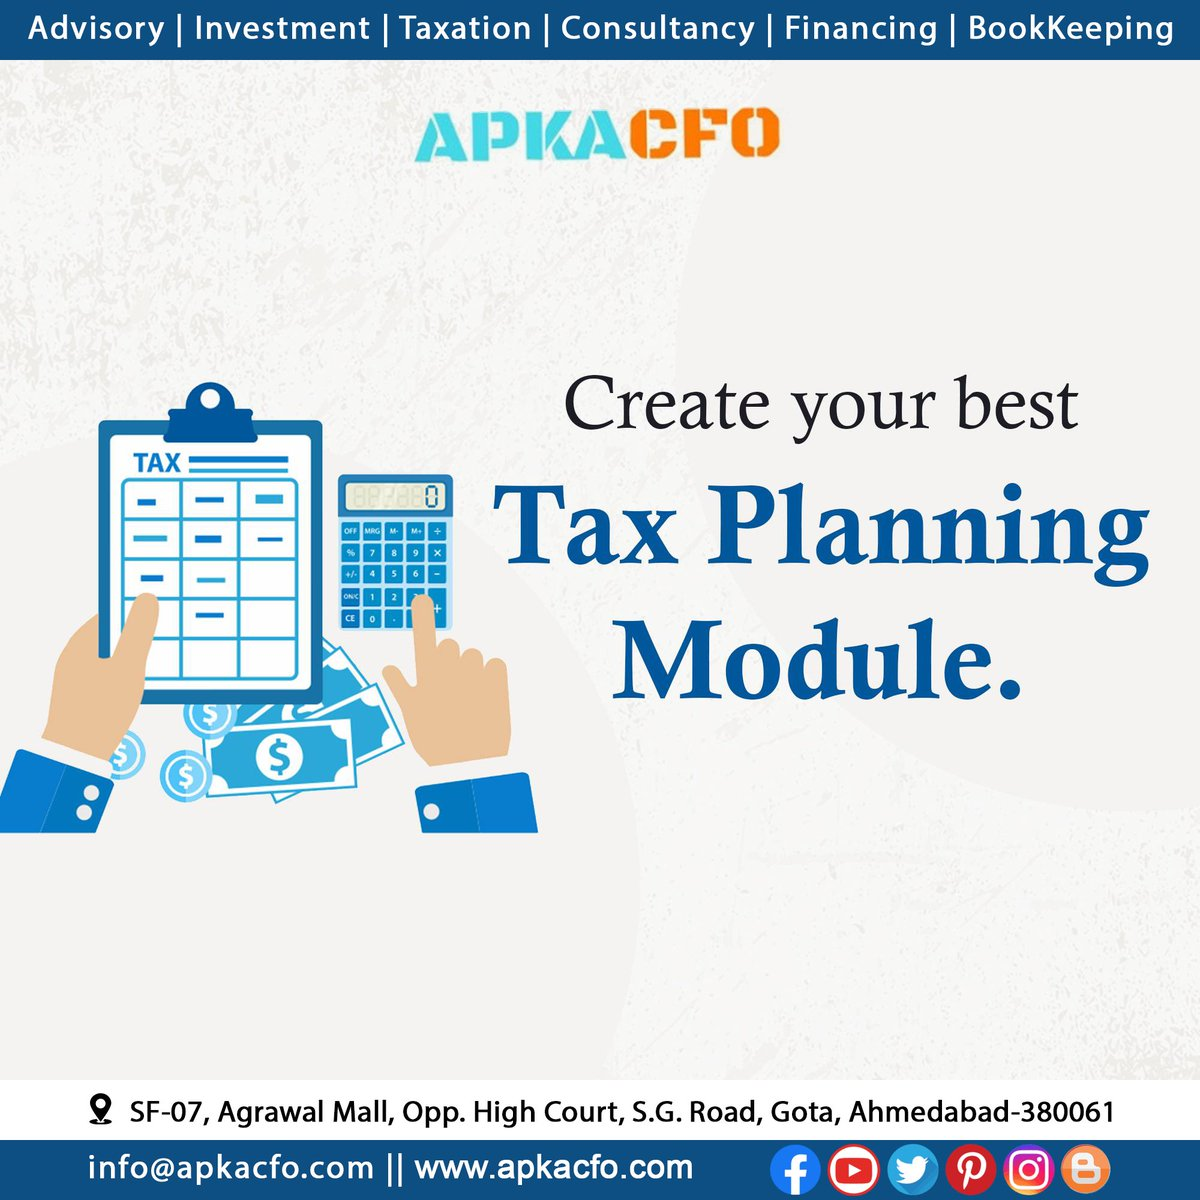 With #APKACFO #plan your #taxes more effective way to increase #profitability   #accountant #businessowner #incometax #entrepreneurship #taxrefund #income #smallbusiness #cash #business #accounting #wealth #motivation #money #financialfreedom #finance #startup #entrepreneur